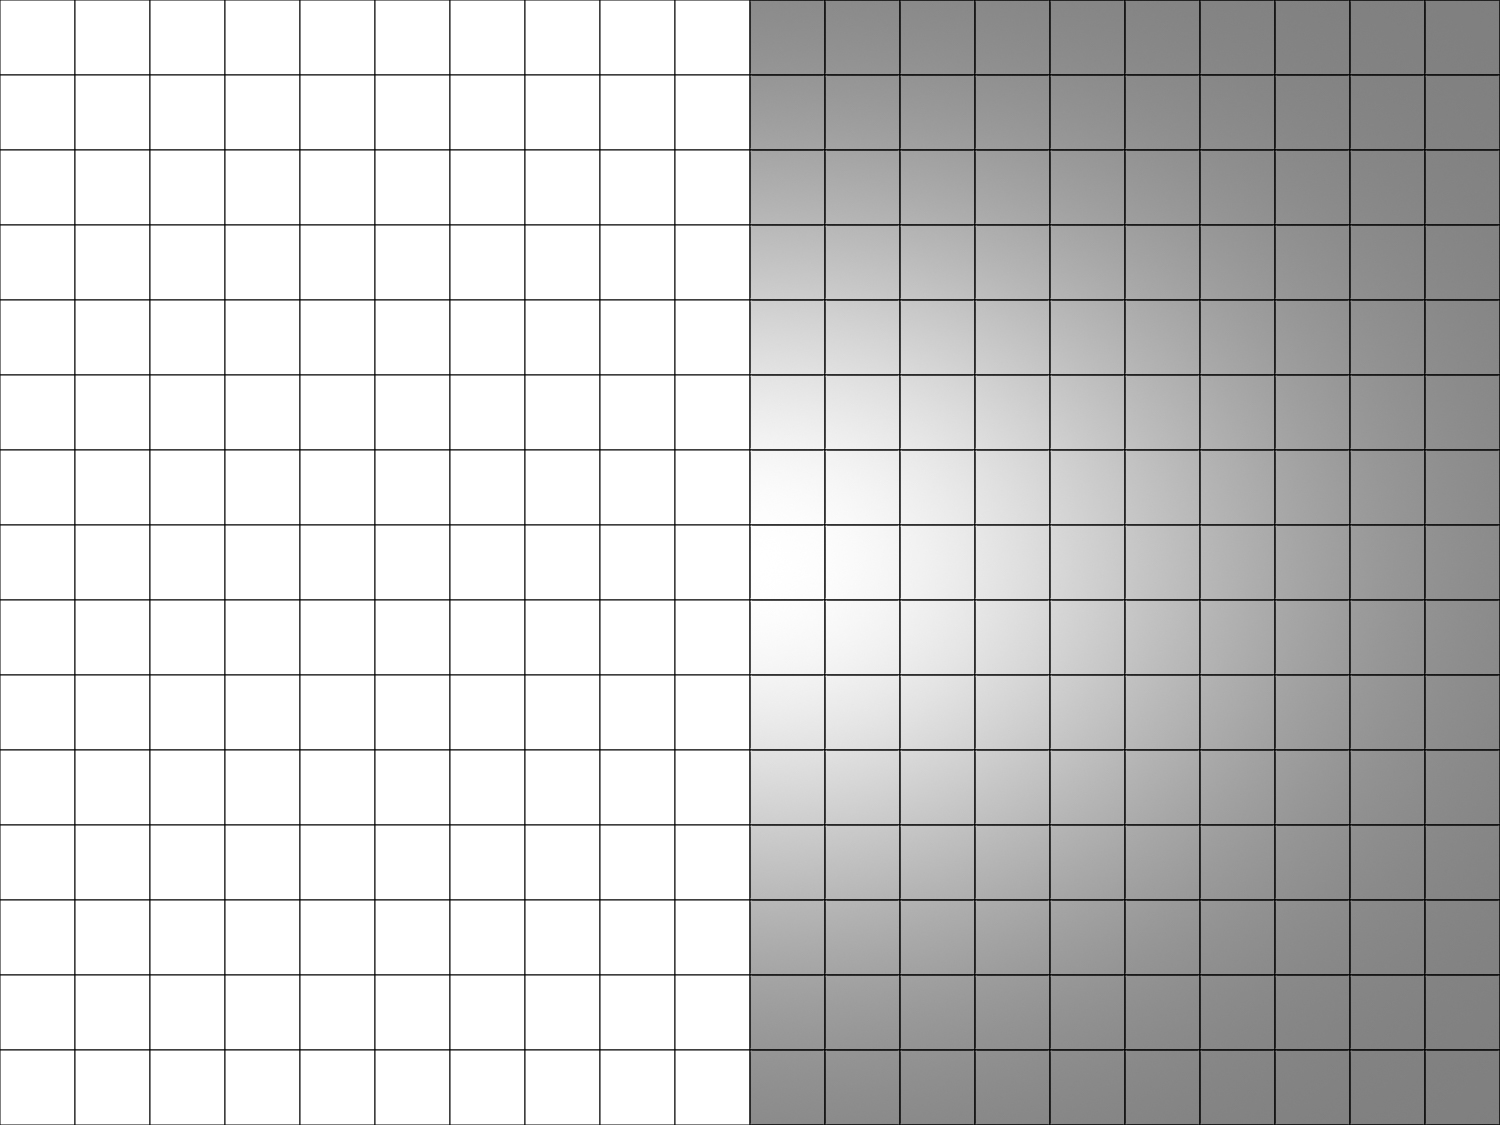 Image: Amount -50, Midpoint 0, Roundness 0, Feather +100